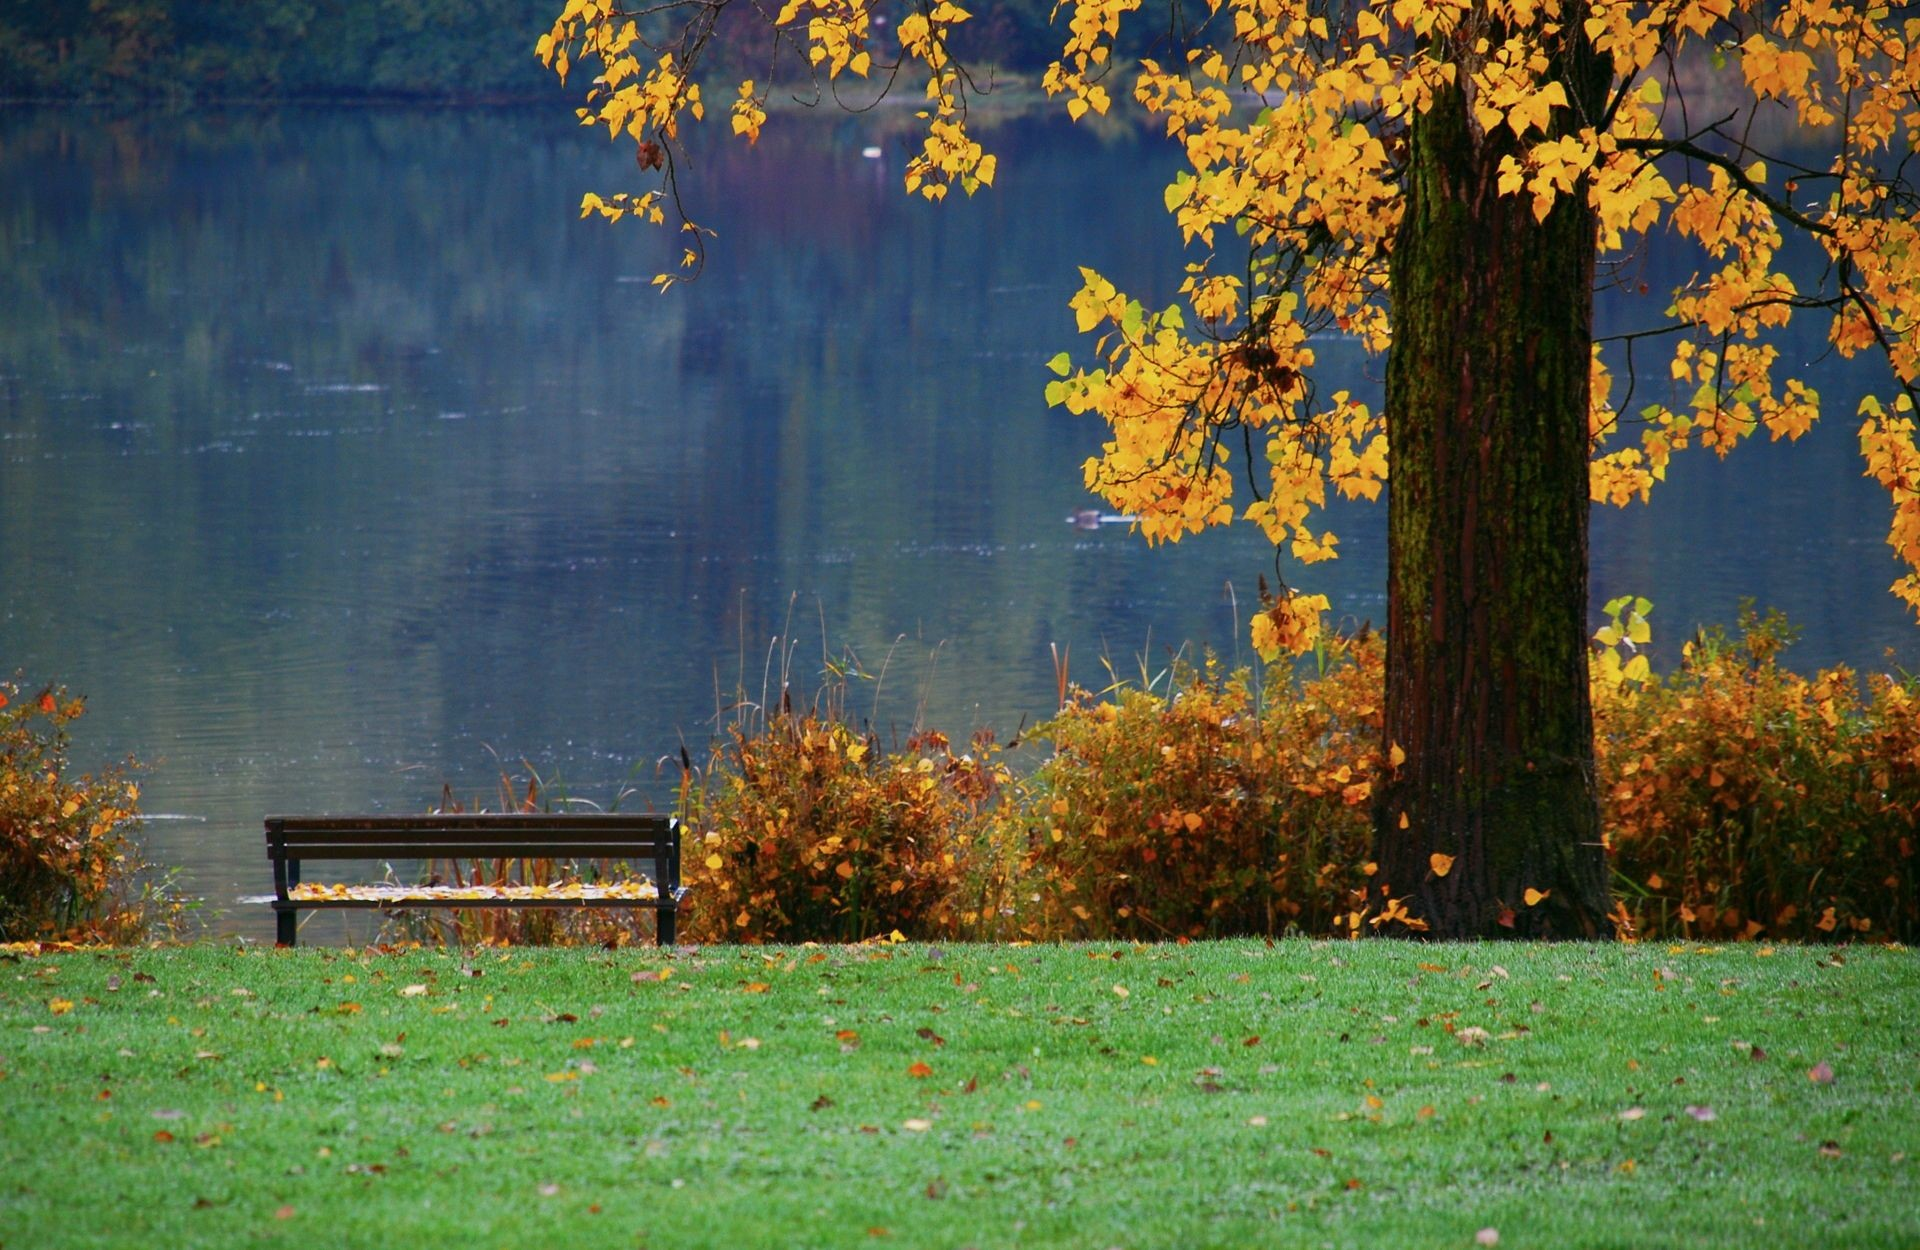 Autumn Leaves HD Wallpapers, Autumn Leaves Background, New Wallpapers